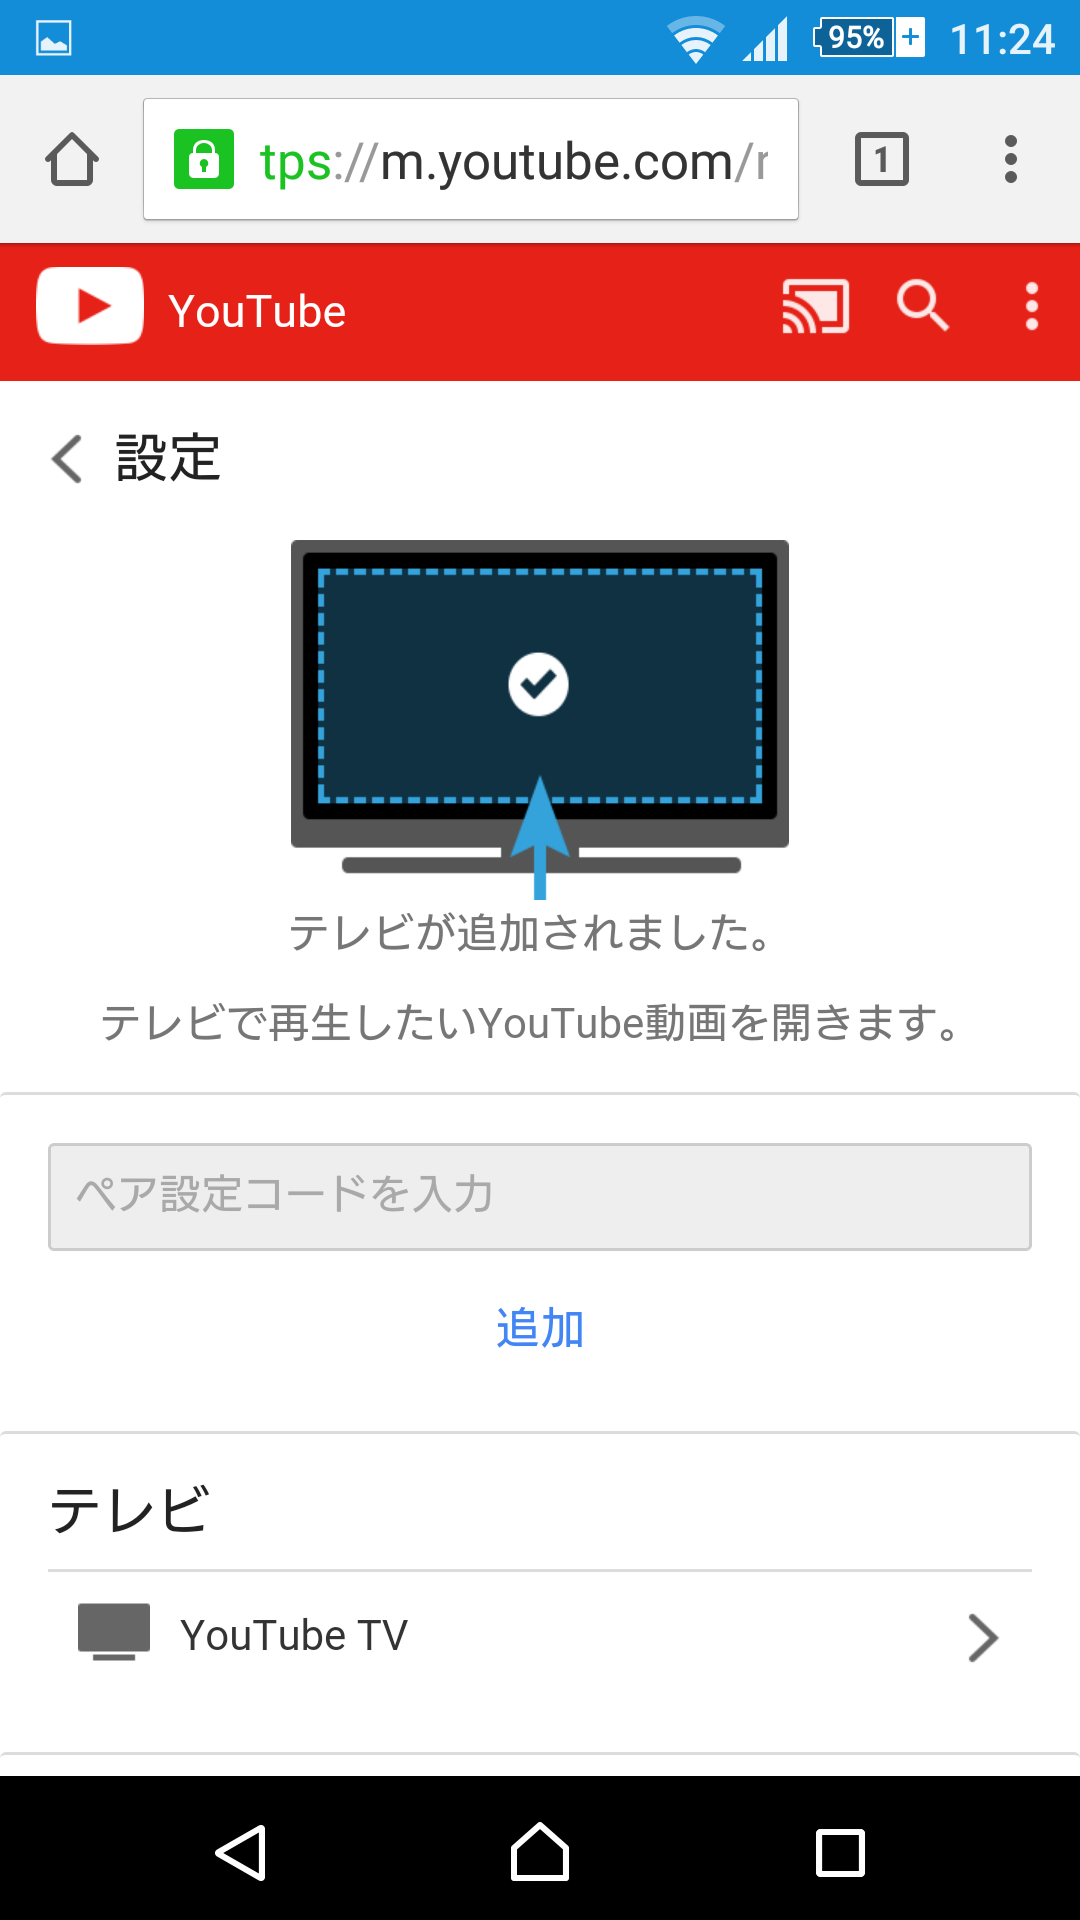 Screenshot_2015-12-23-11-24-27.png